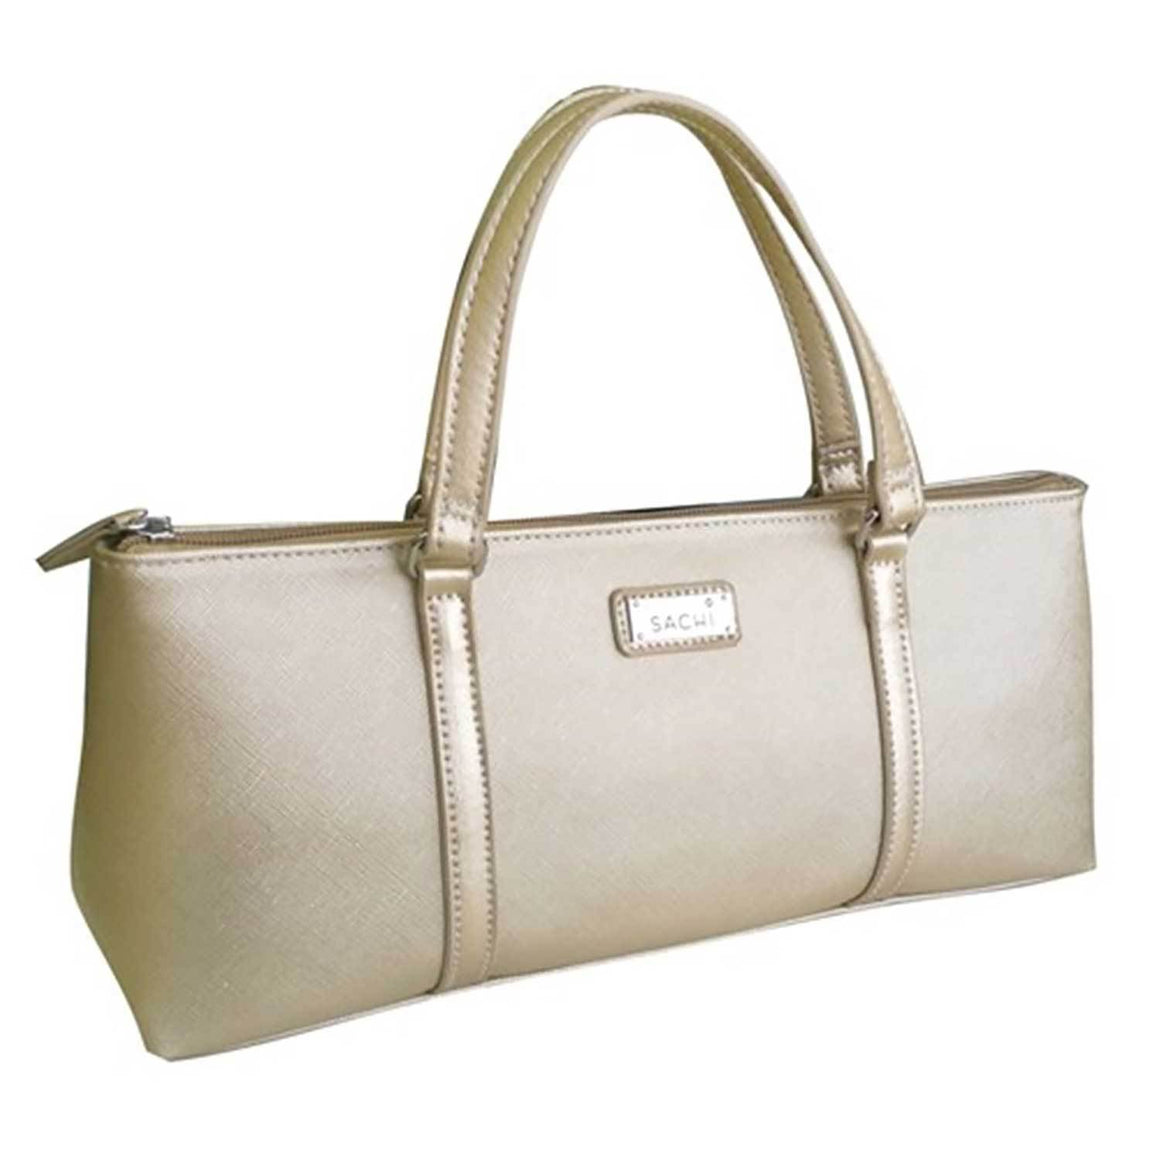 Sachi Insulated Lunch Purse Champagne Gold - stuff-n-things